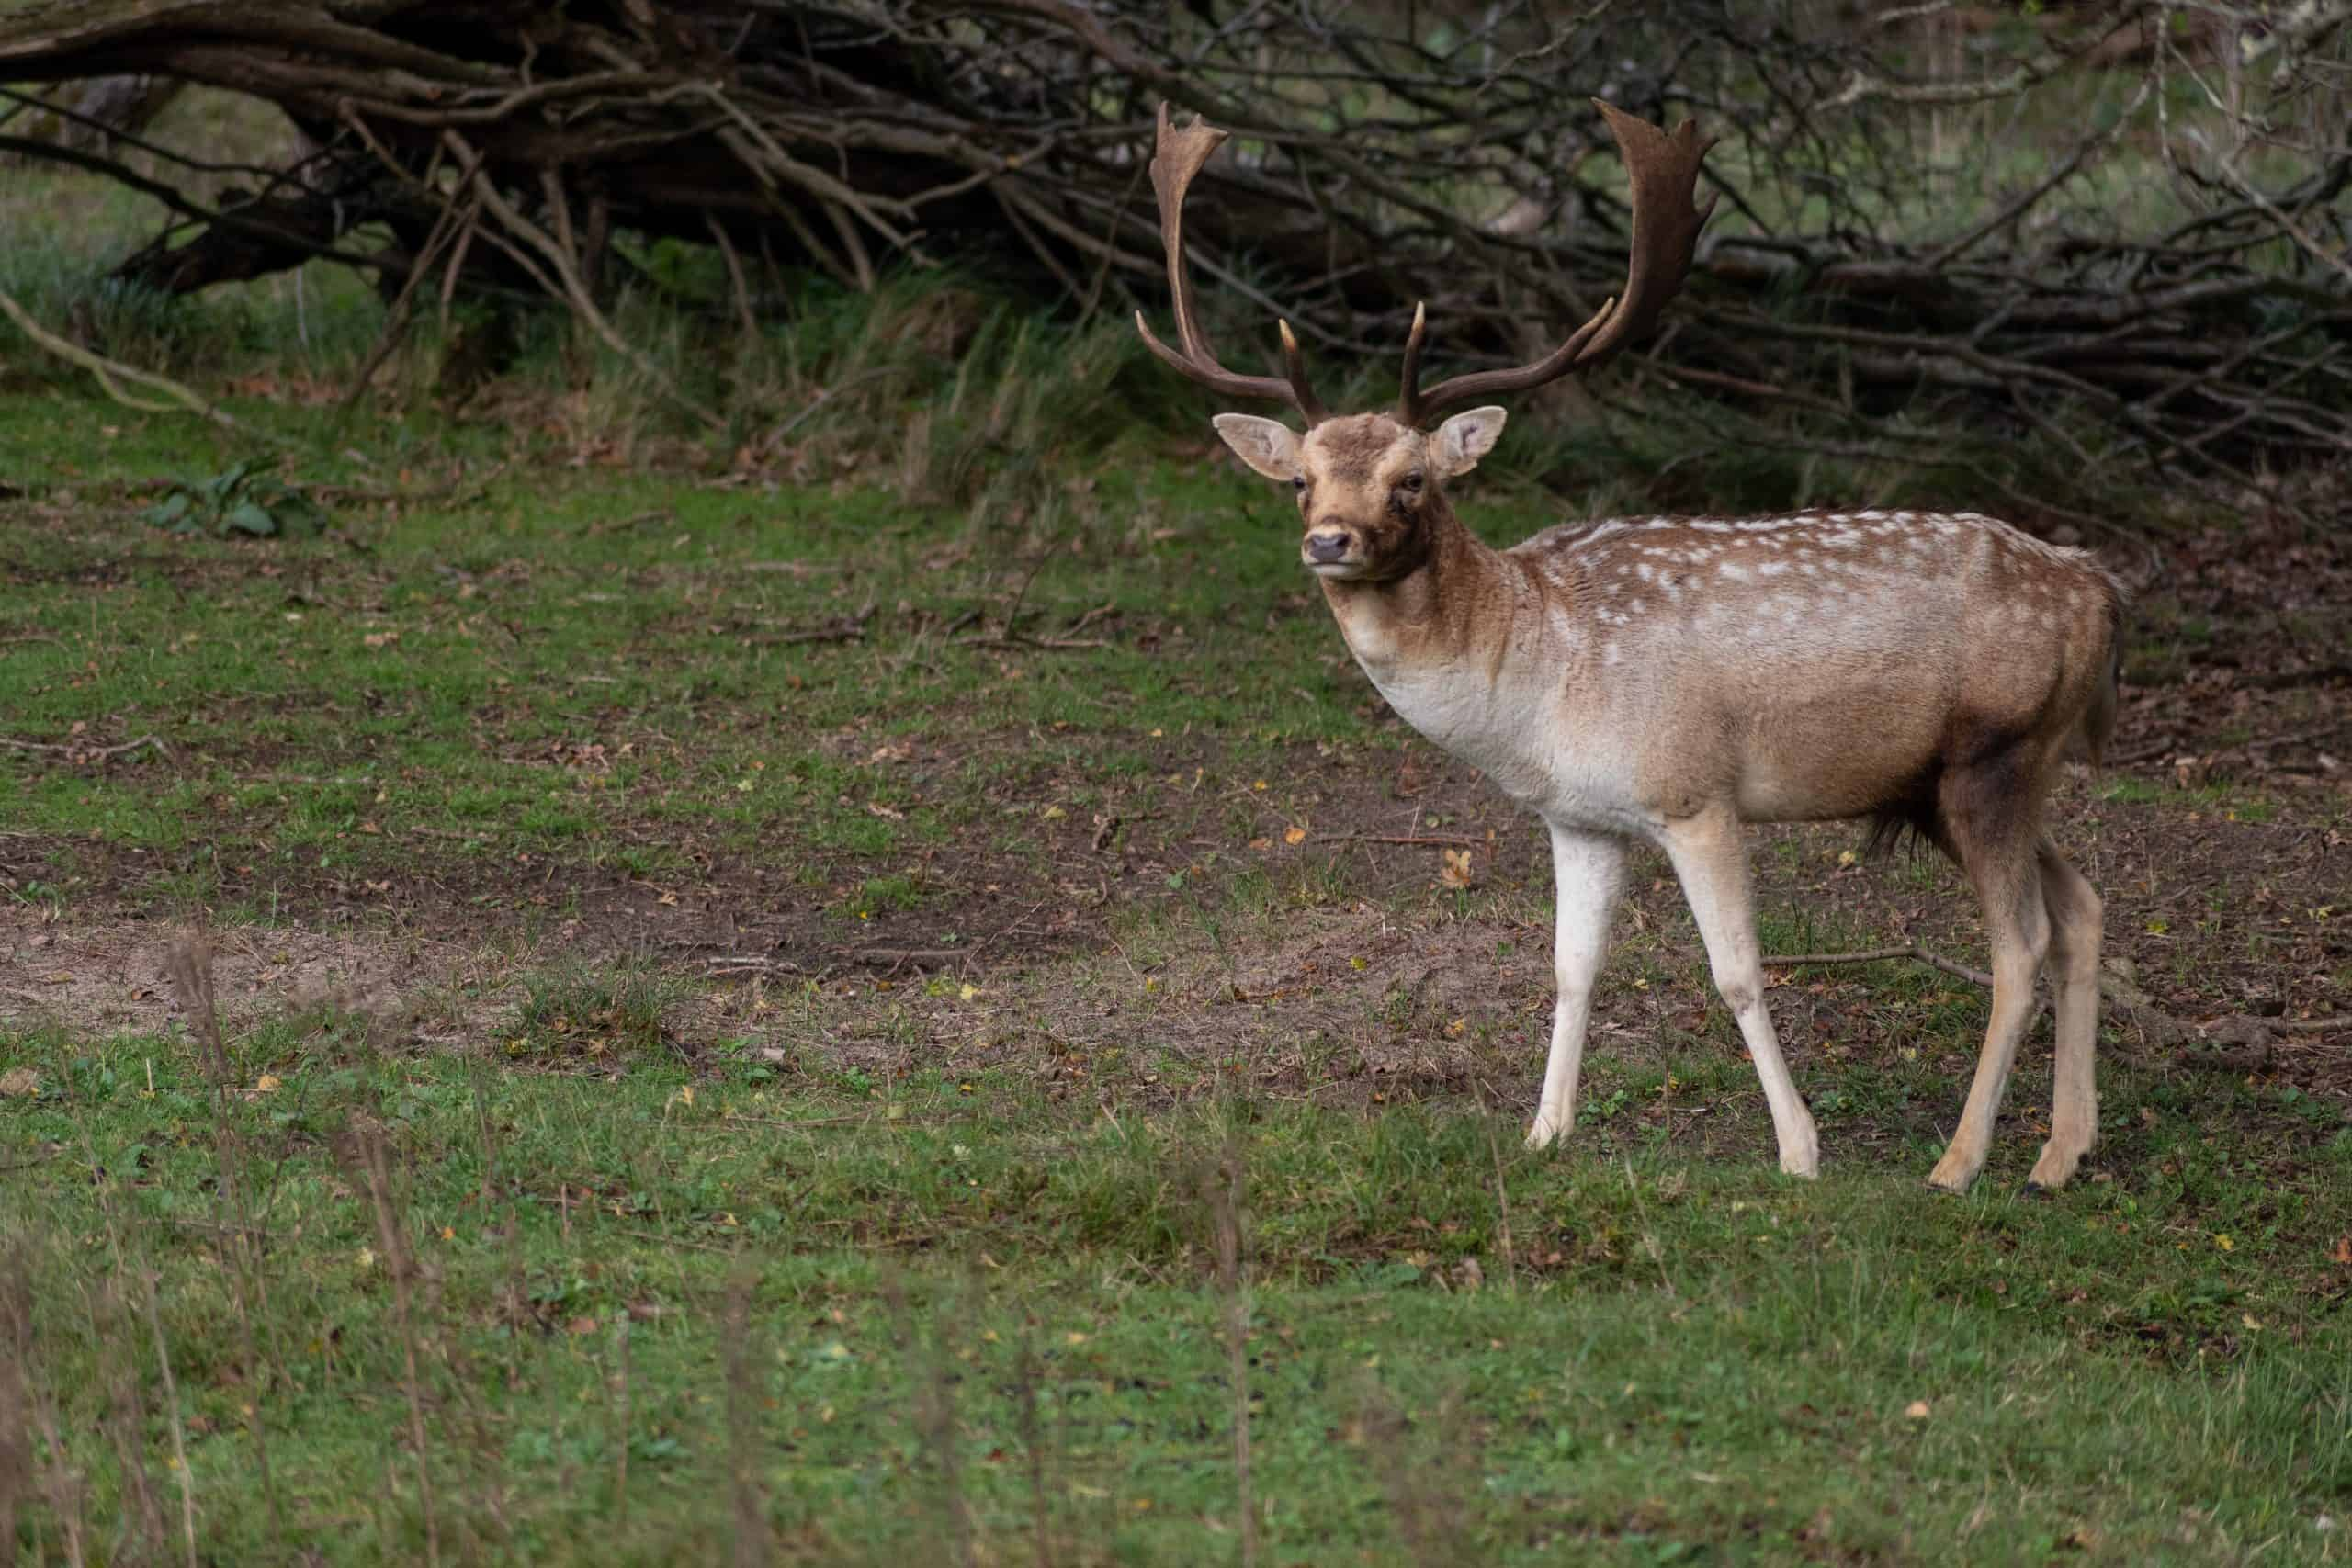 Wildlife in de Amsterdamse waterleidingduinen